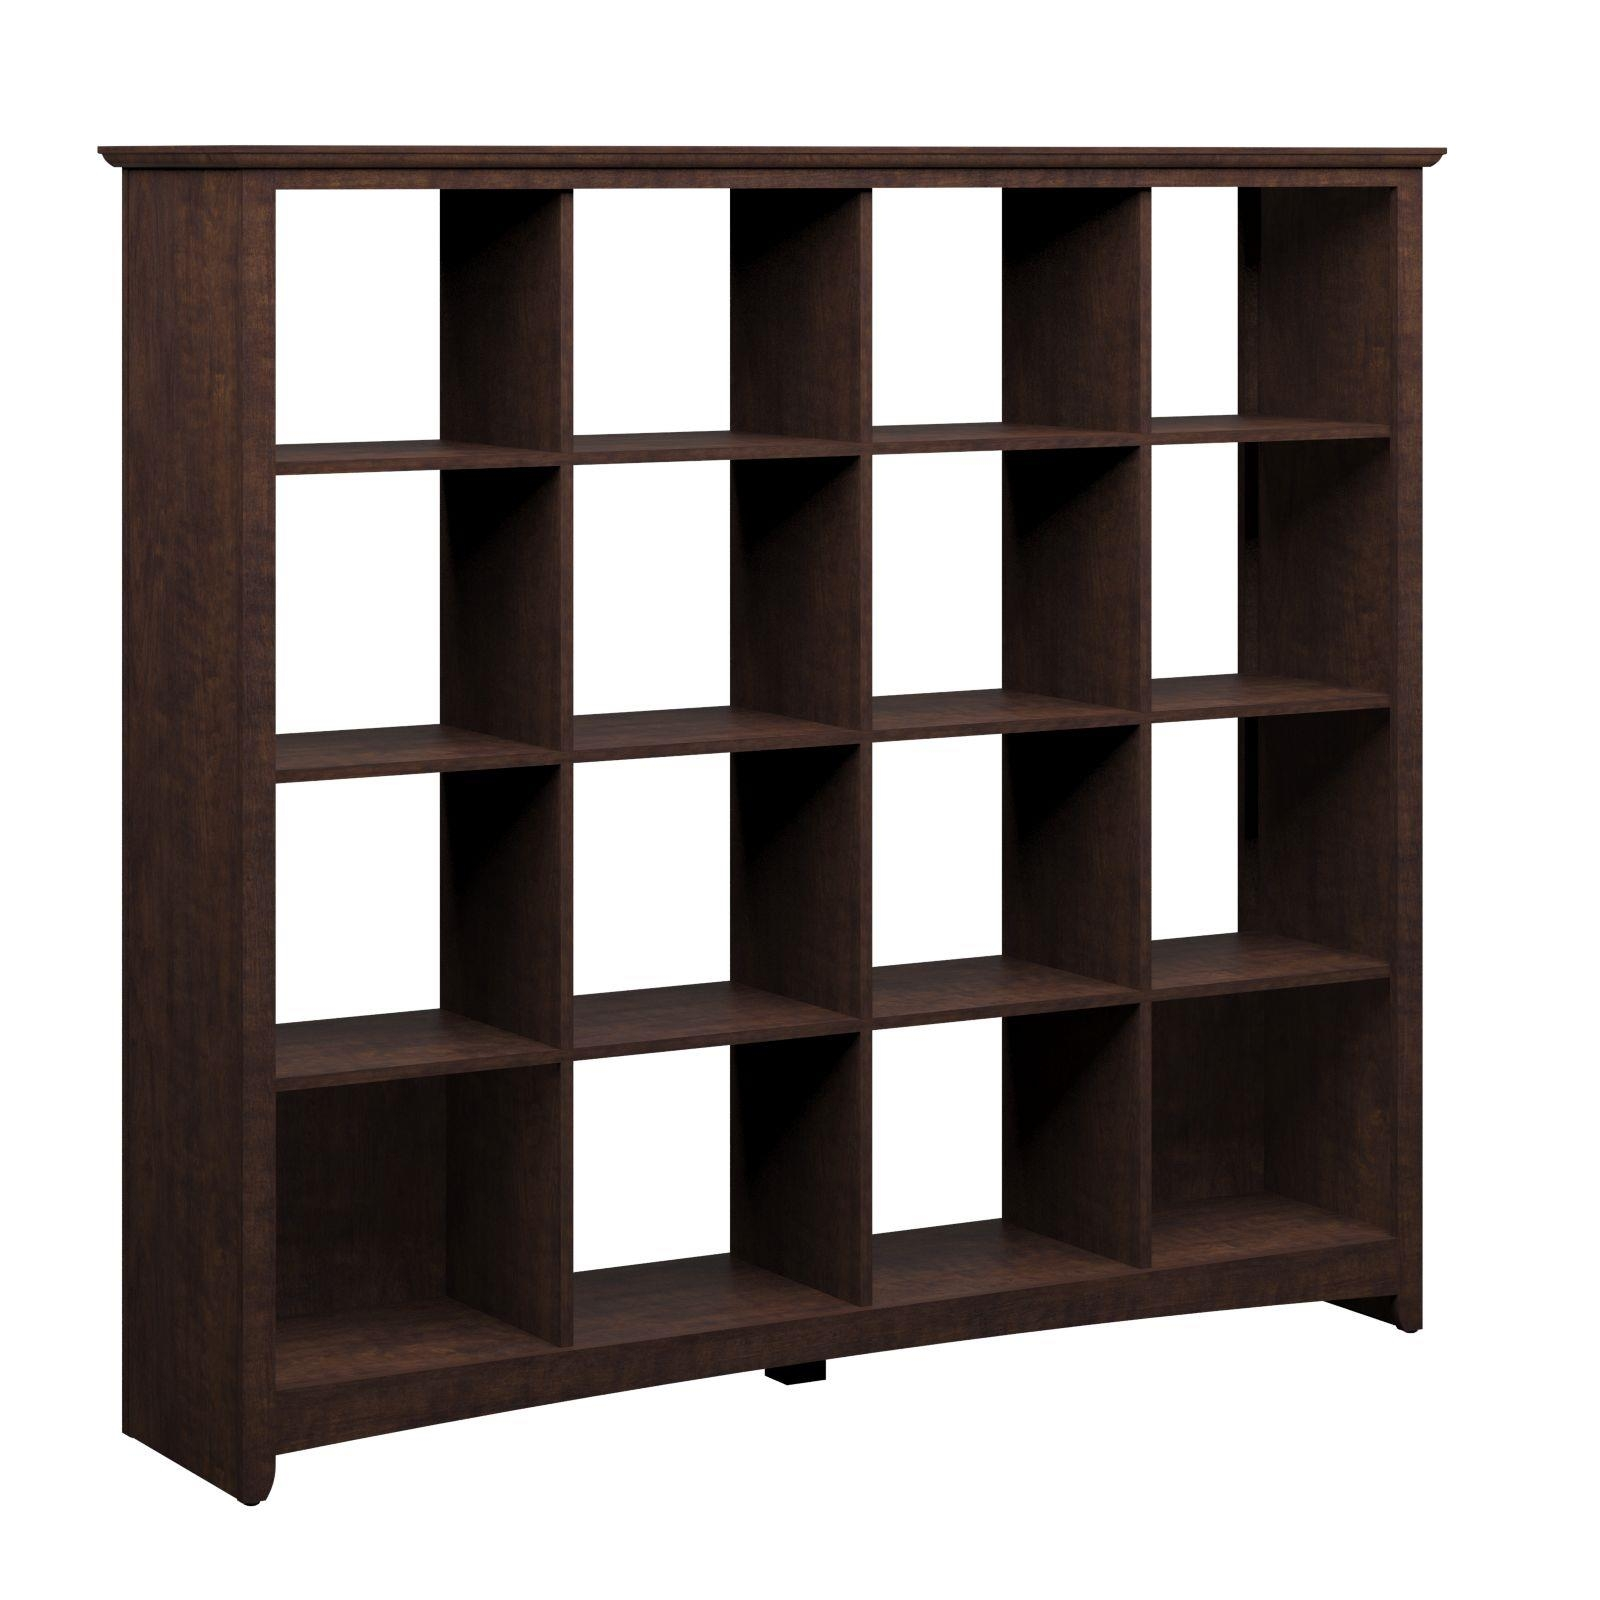 Interior Design Exciting Walmart Bookshelves For Inspiring Office Throughout Wooden Bookshelves (#7 of 14)